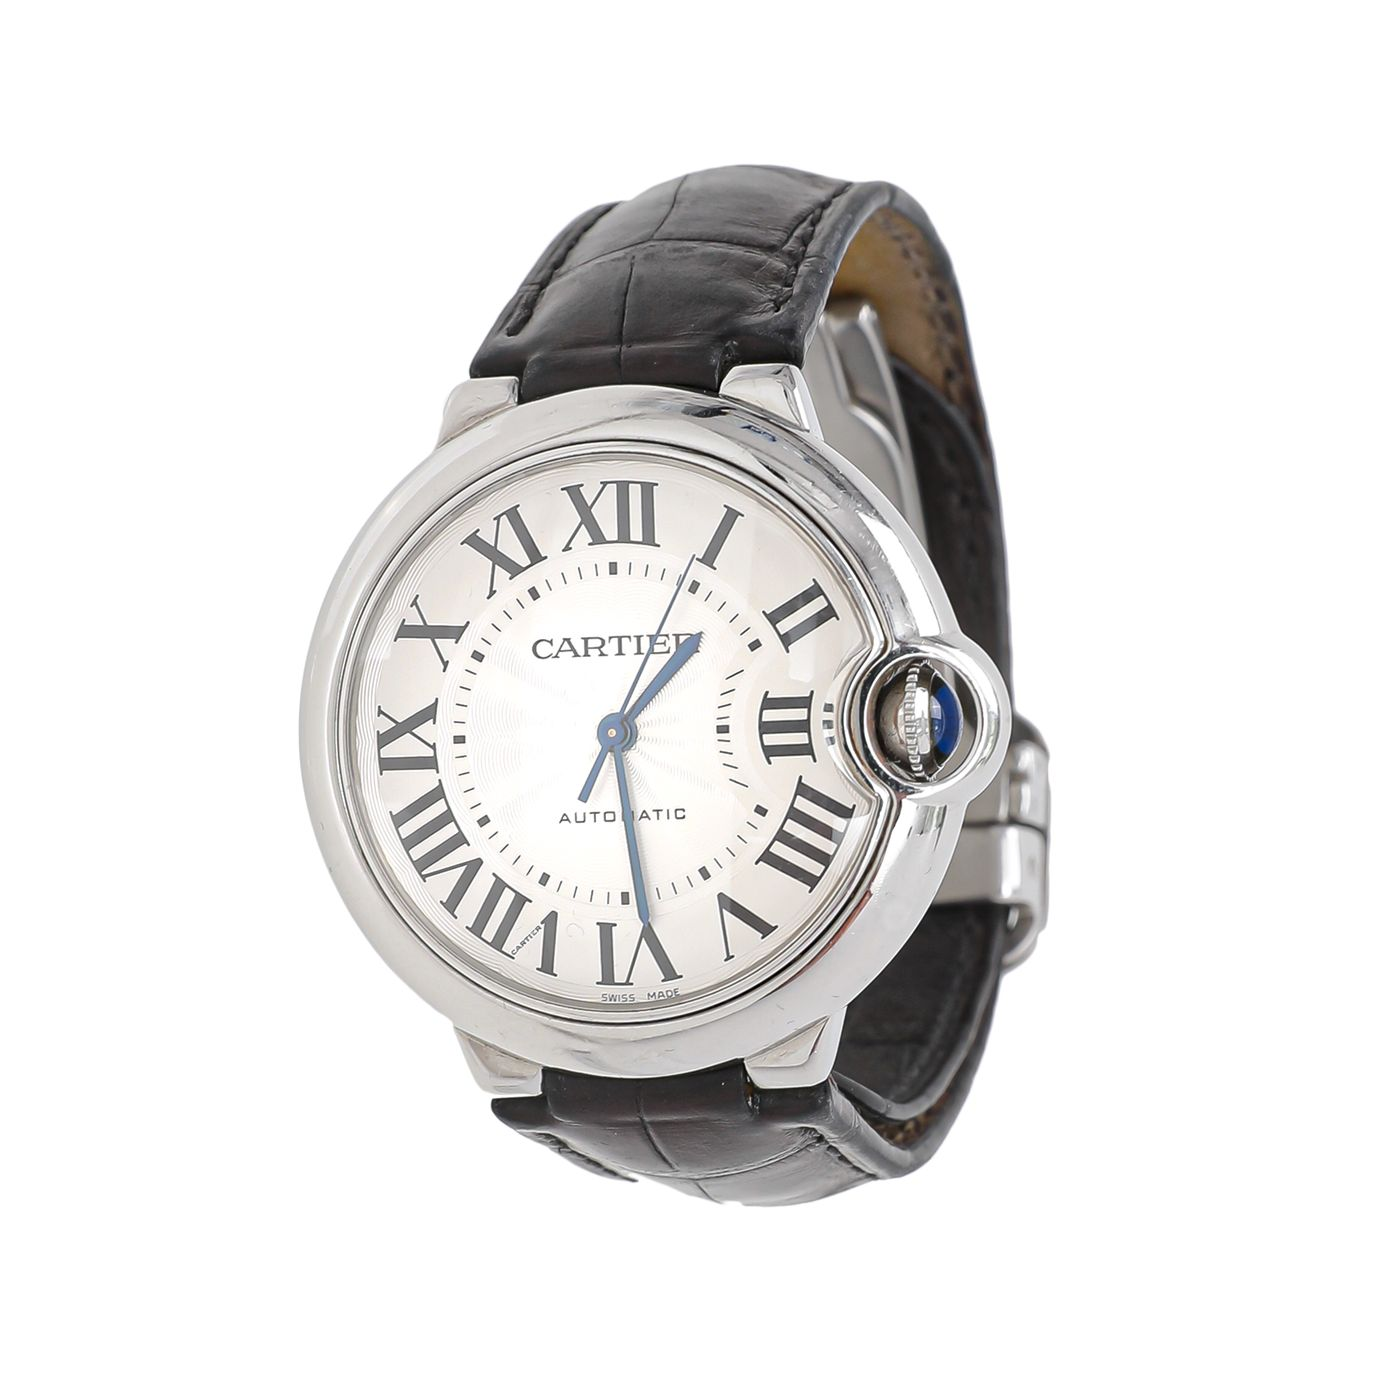 Cartier Black Ballon Bleu De Cartier Watch